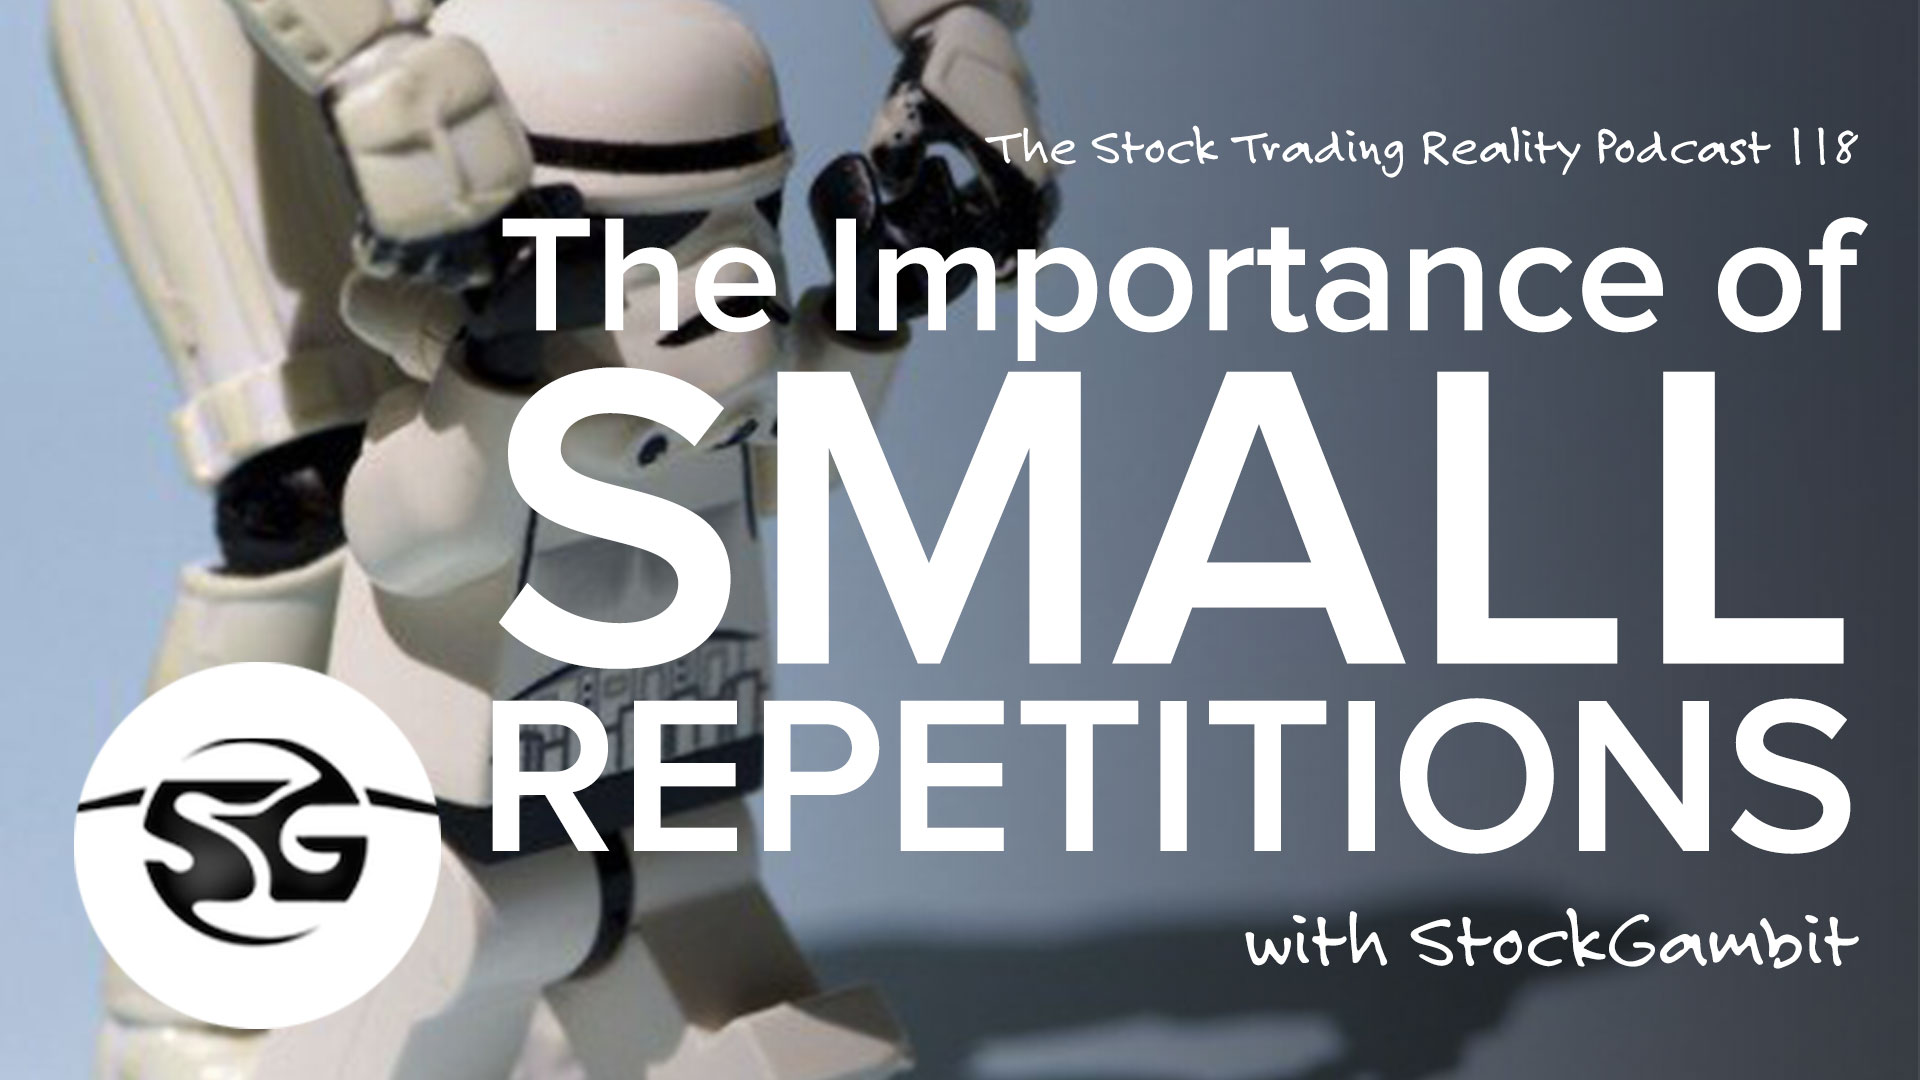 STR 118: The Importance of Small Repetitions